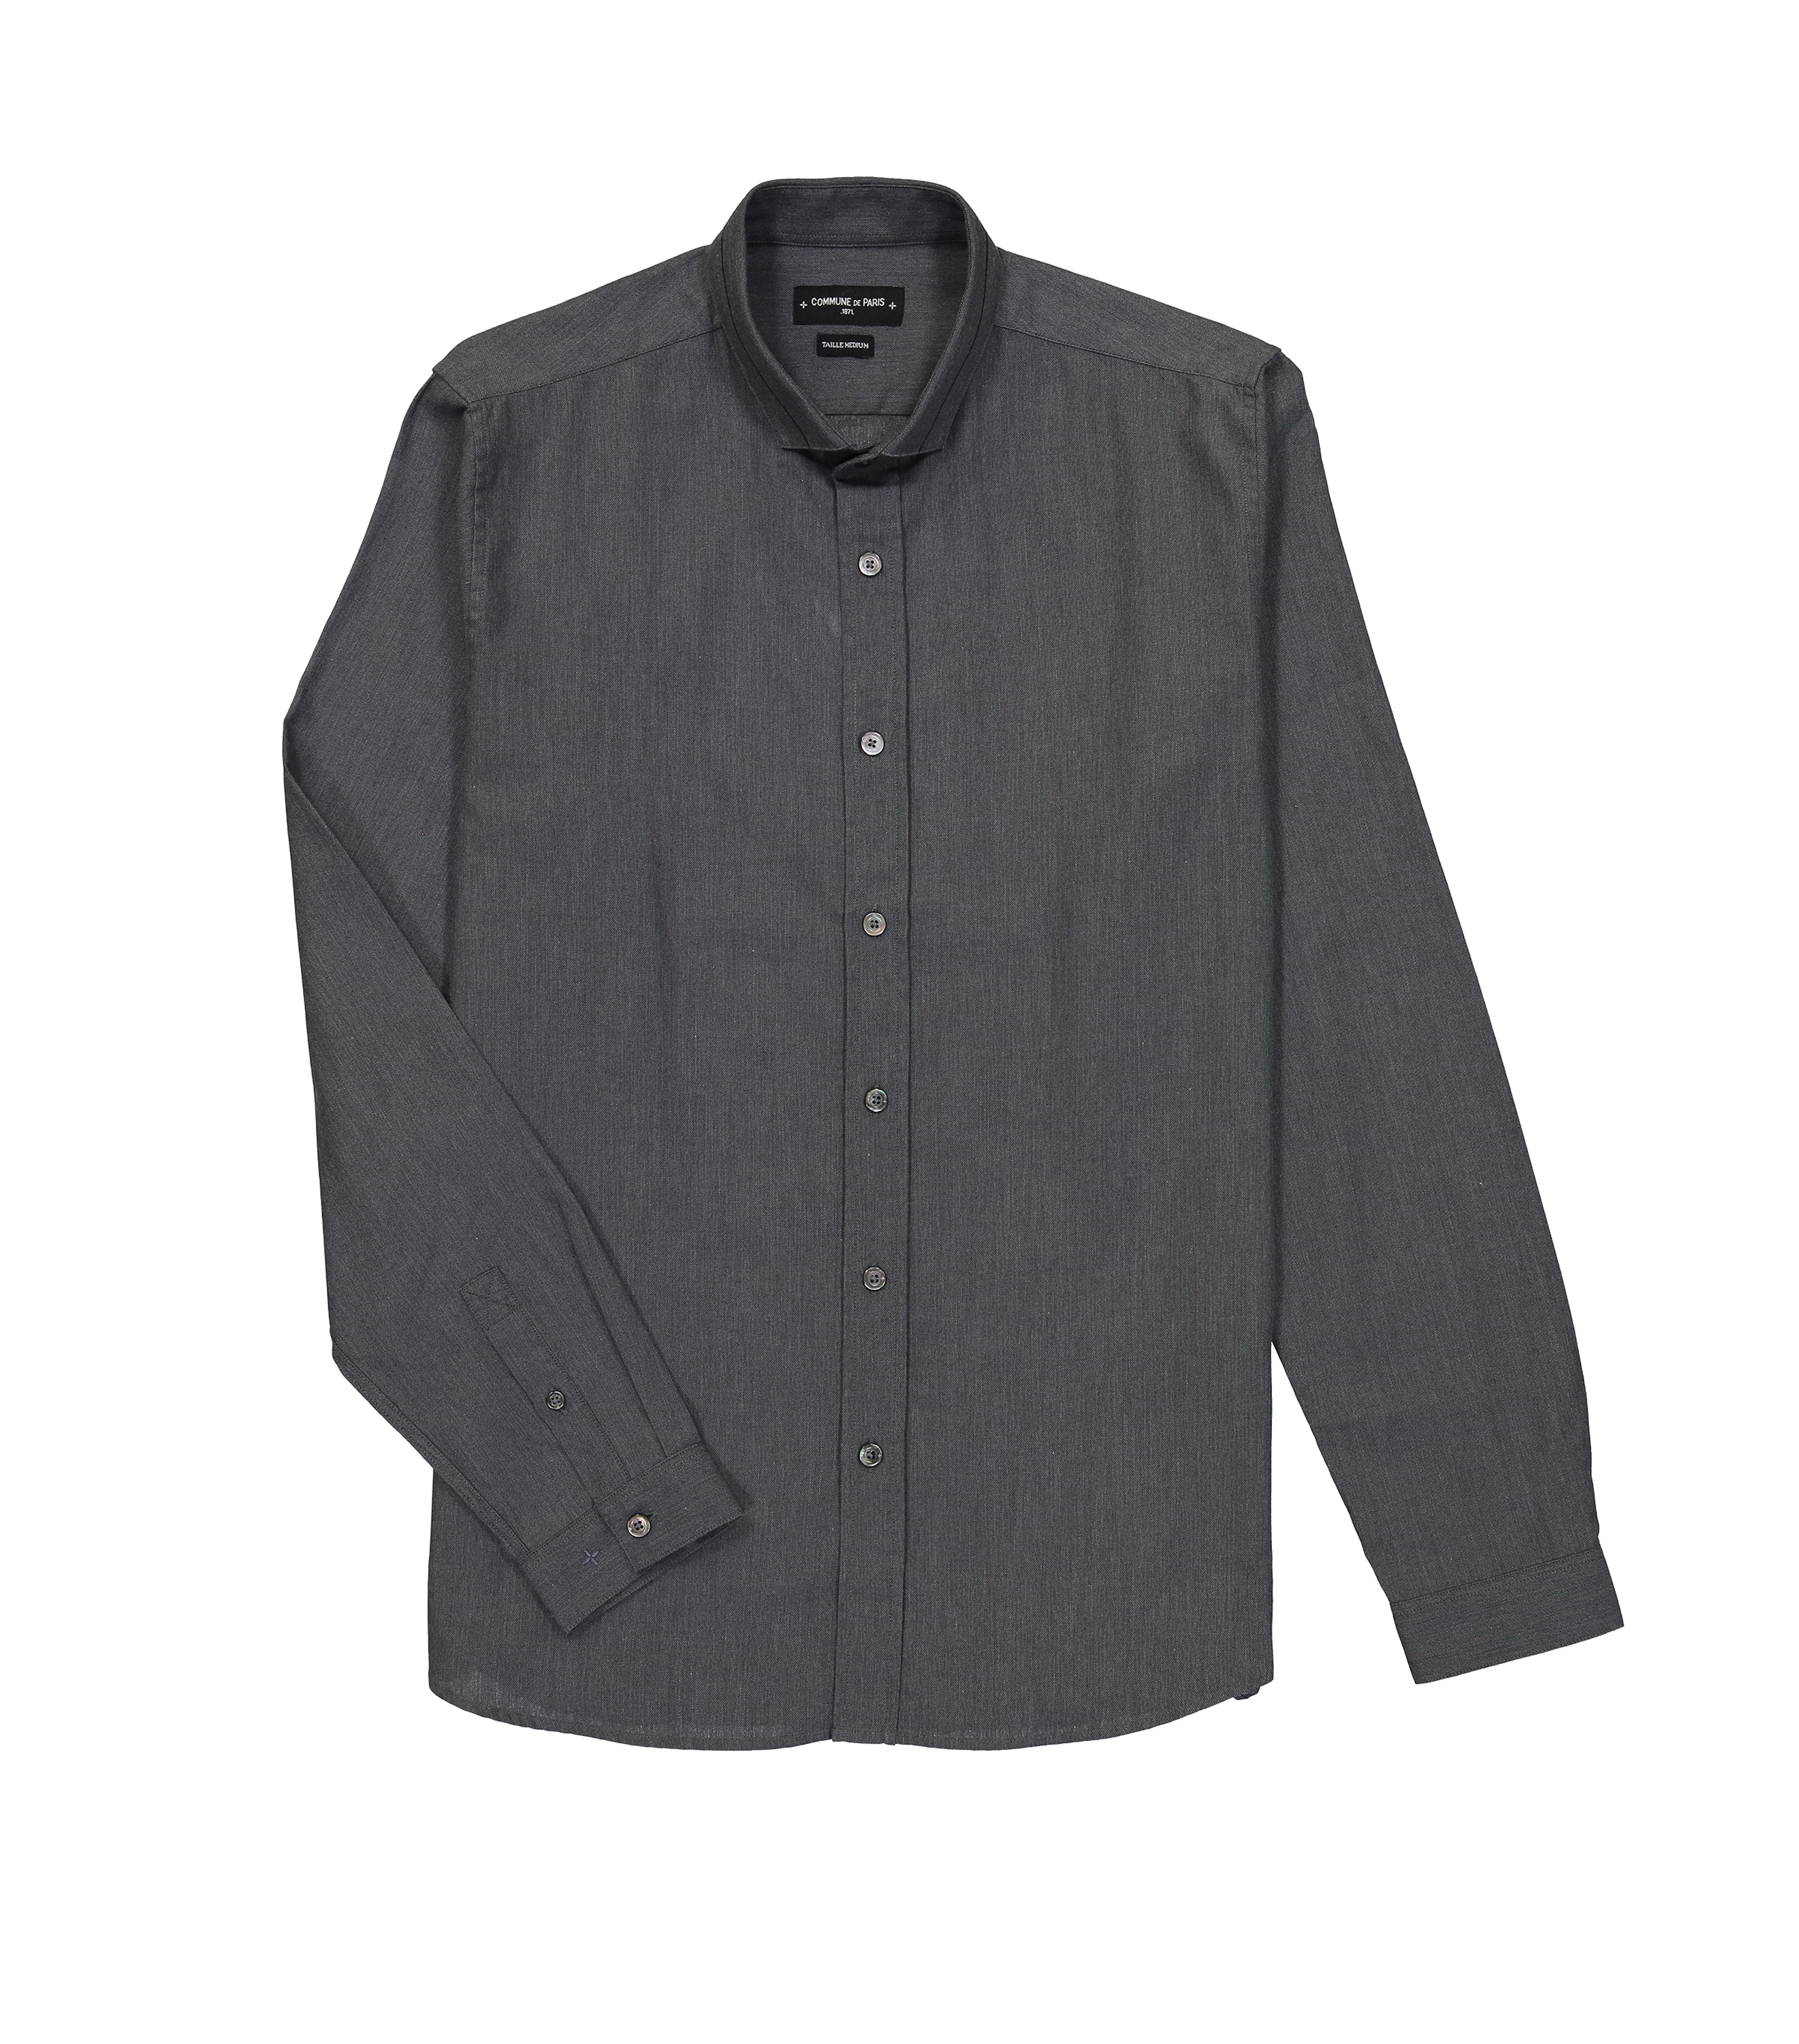 SHIRT LISSAGARAY - Grey